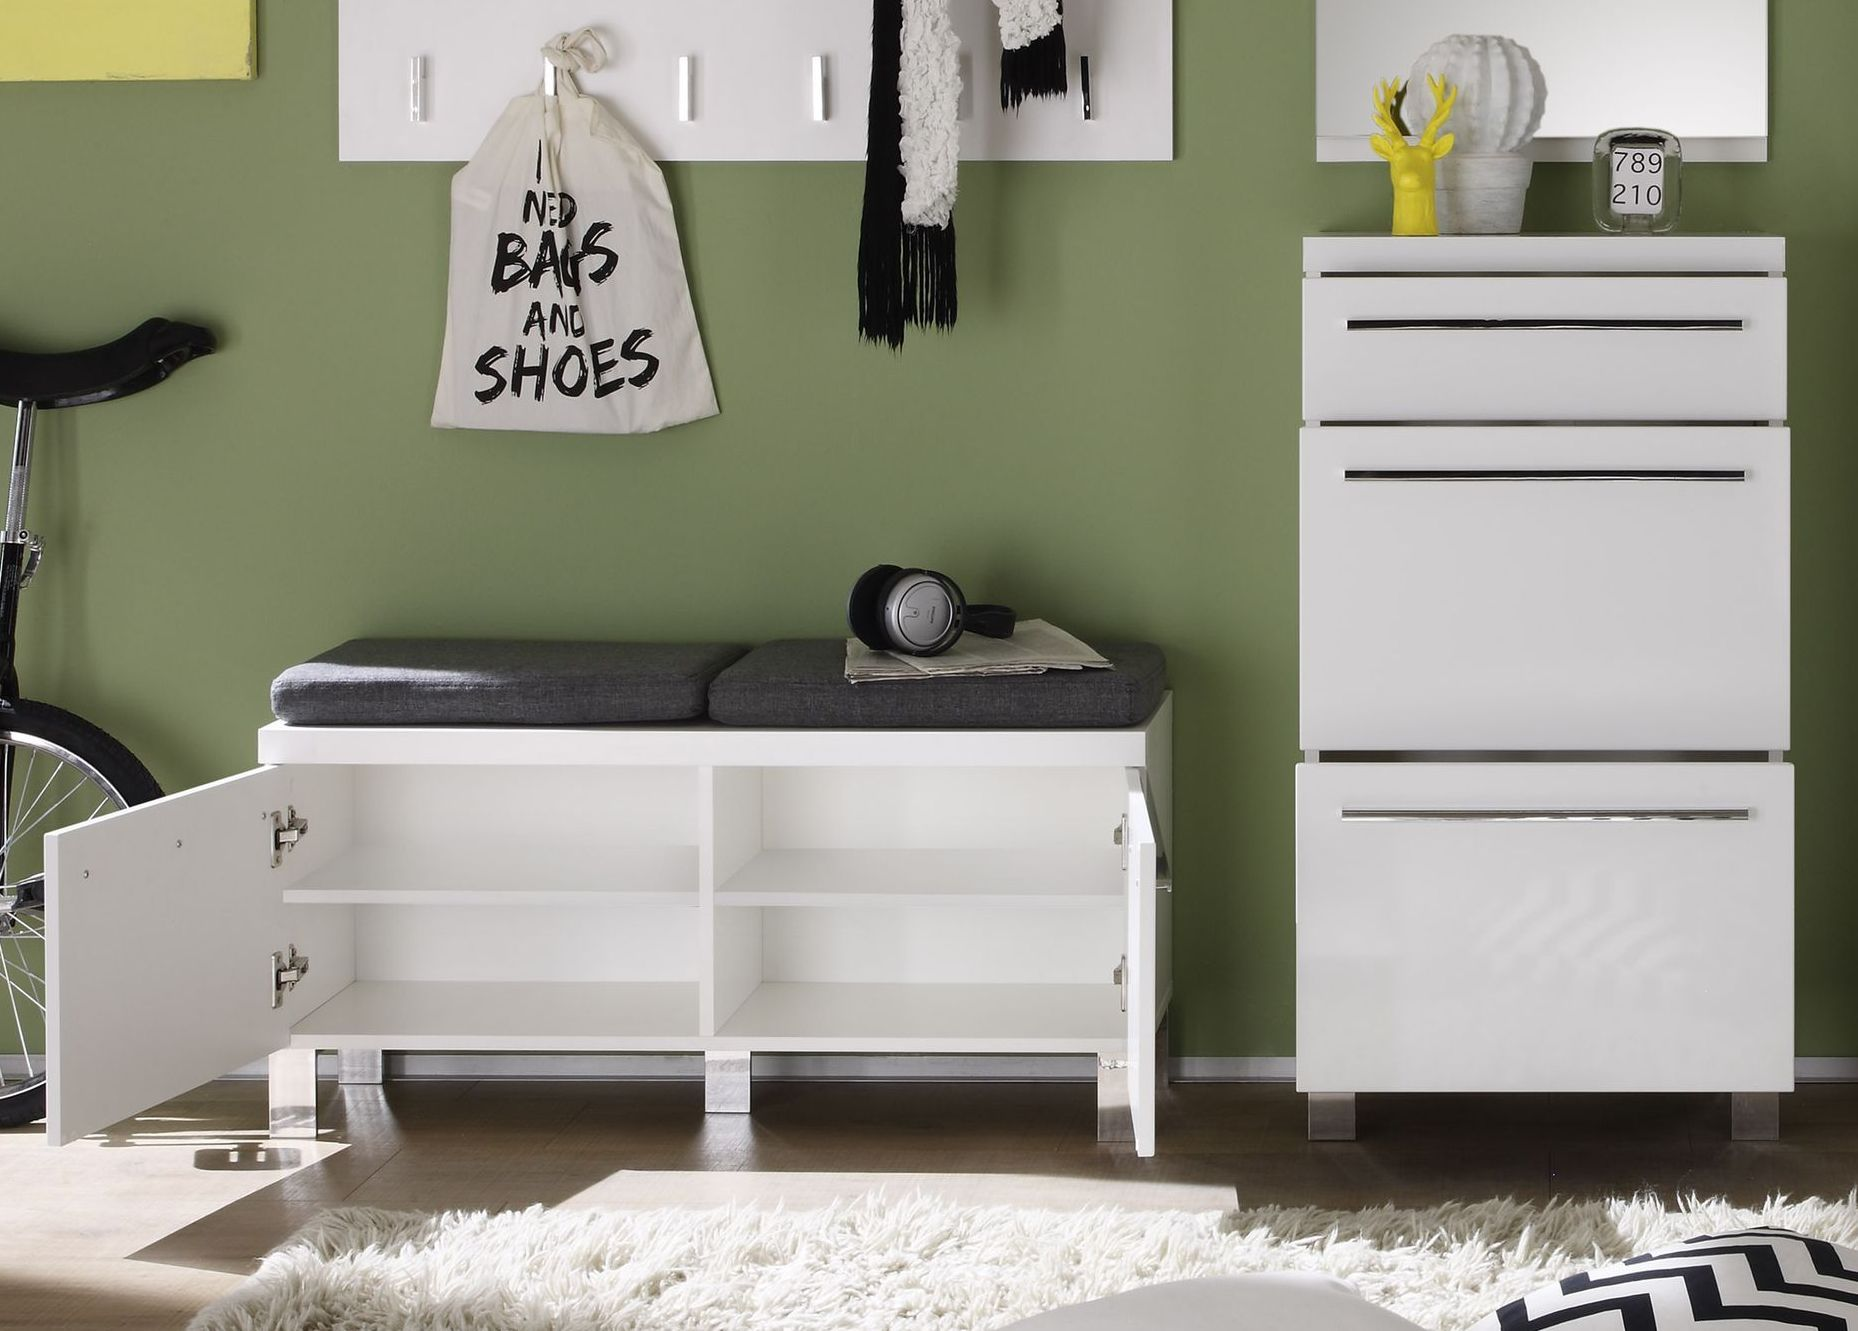 die besten 25 garderobenset ideen auf pinterest schr g v ups garderoben set ikea und walk in. Black Bedroom Furniture Sets. Home Design Ideas